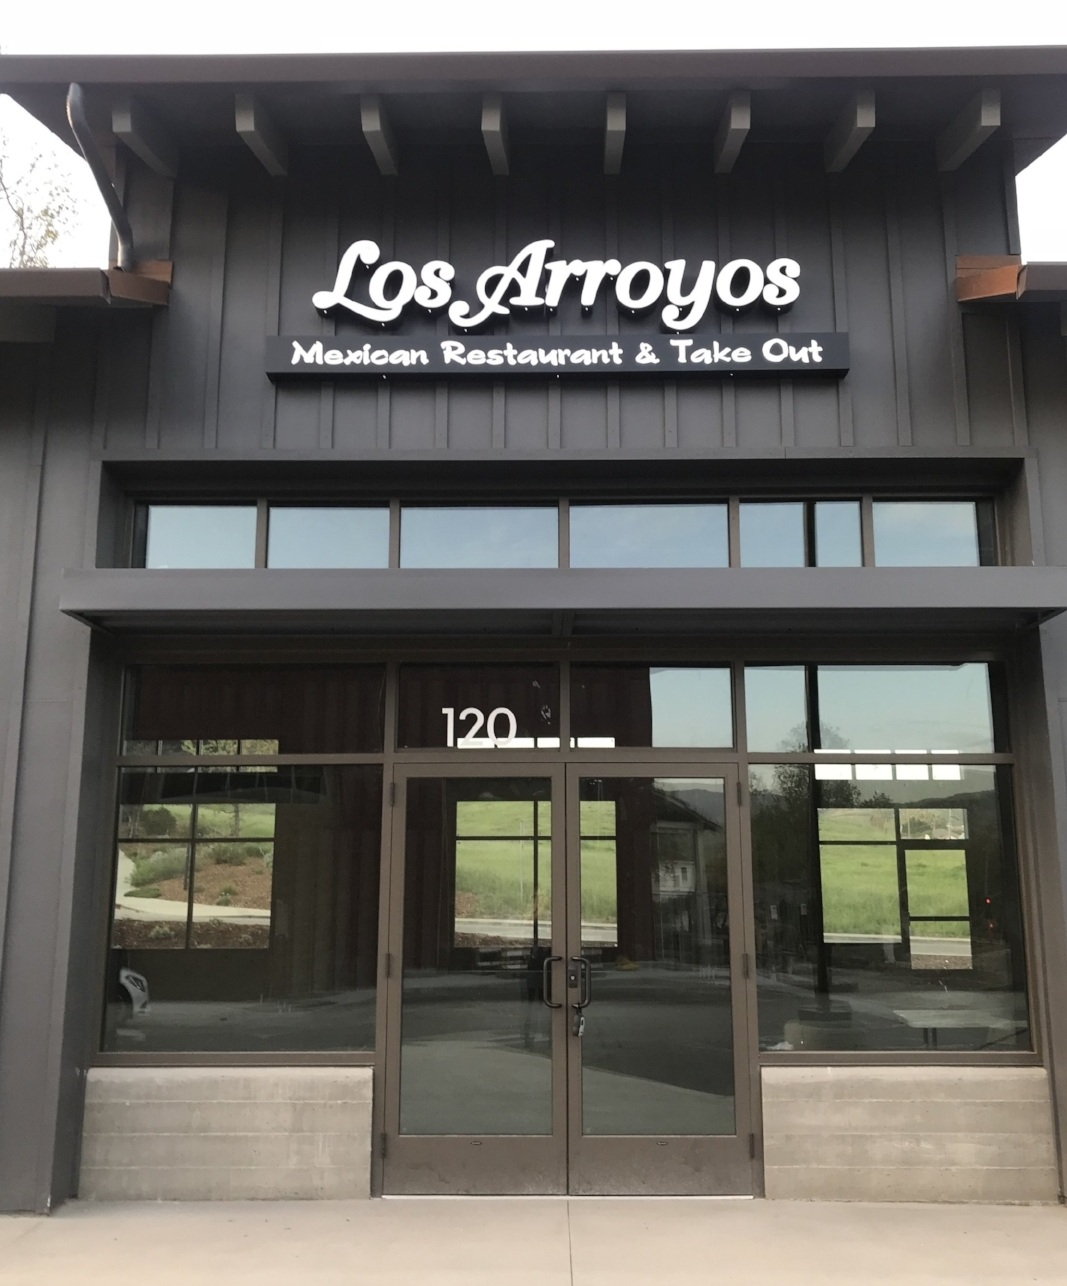 Los Arroyos Solvang - Opening August 2018 at The Merkantile1992 Old Mission Drive #110 & #120Solvang, CA 93463